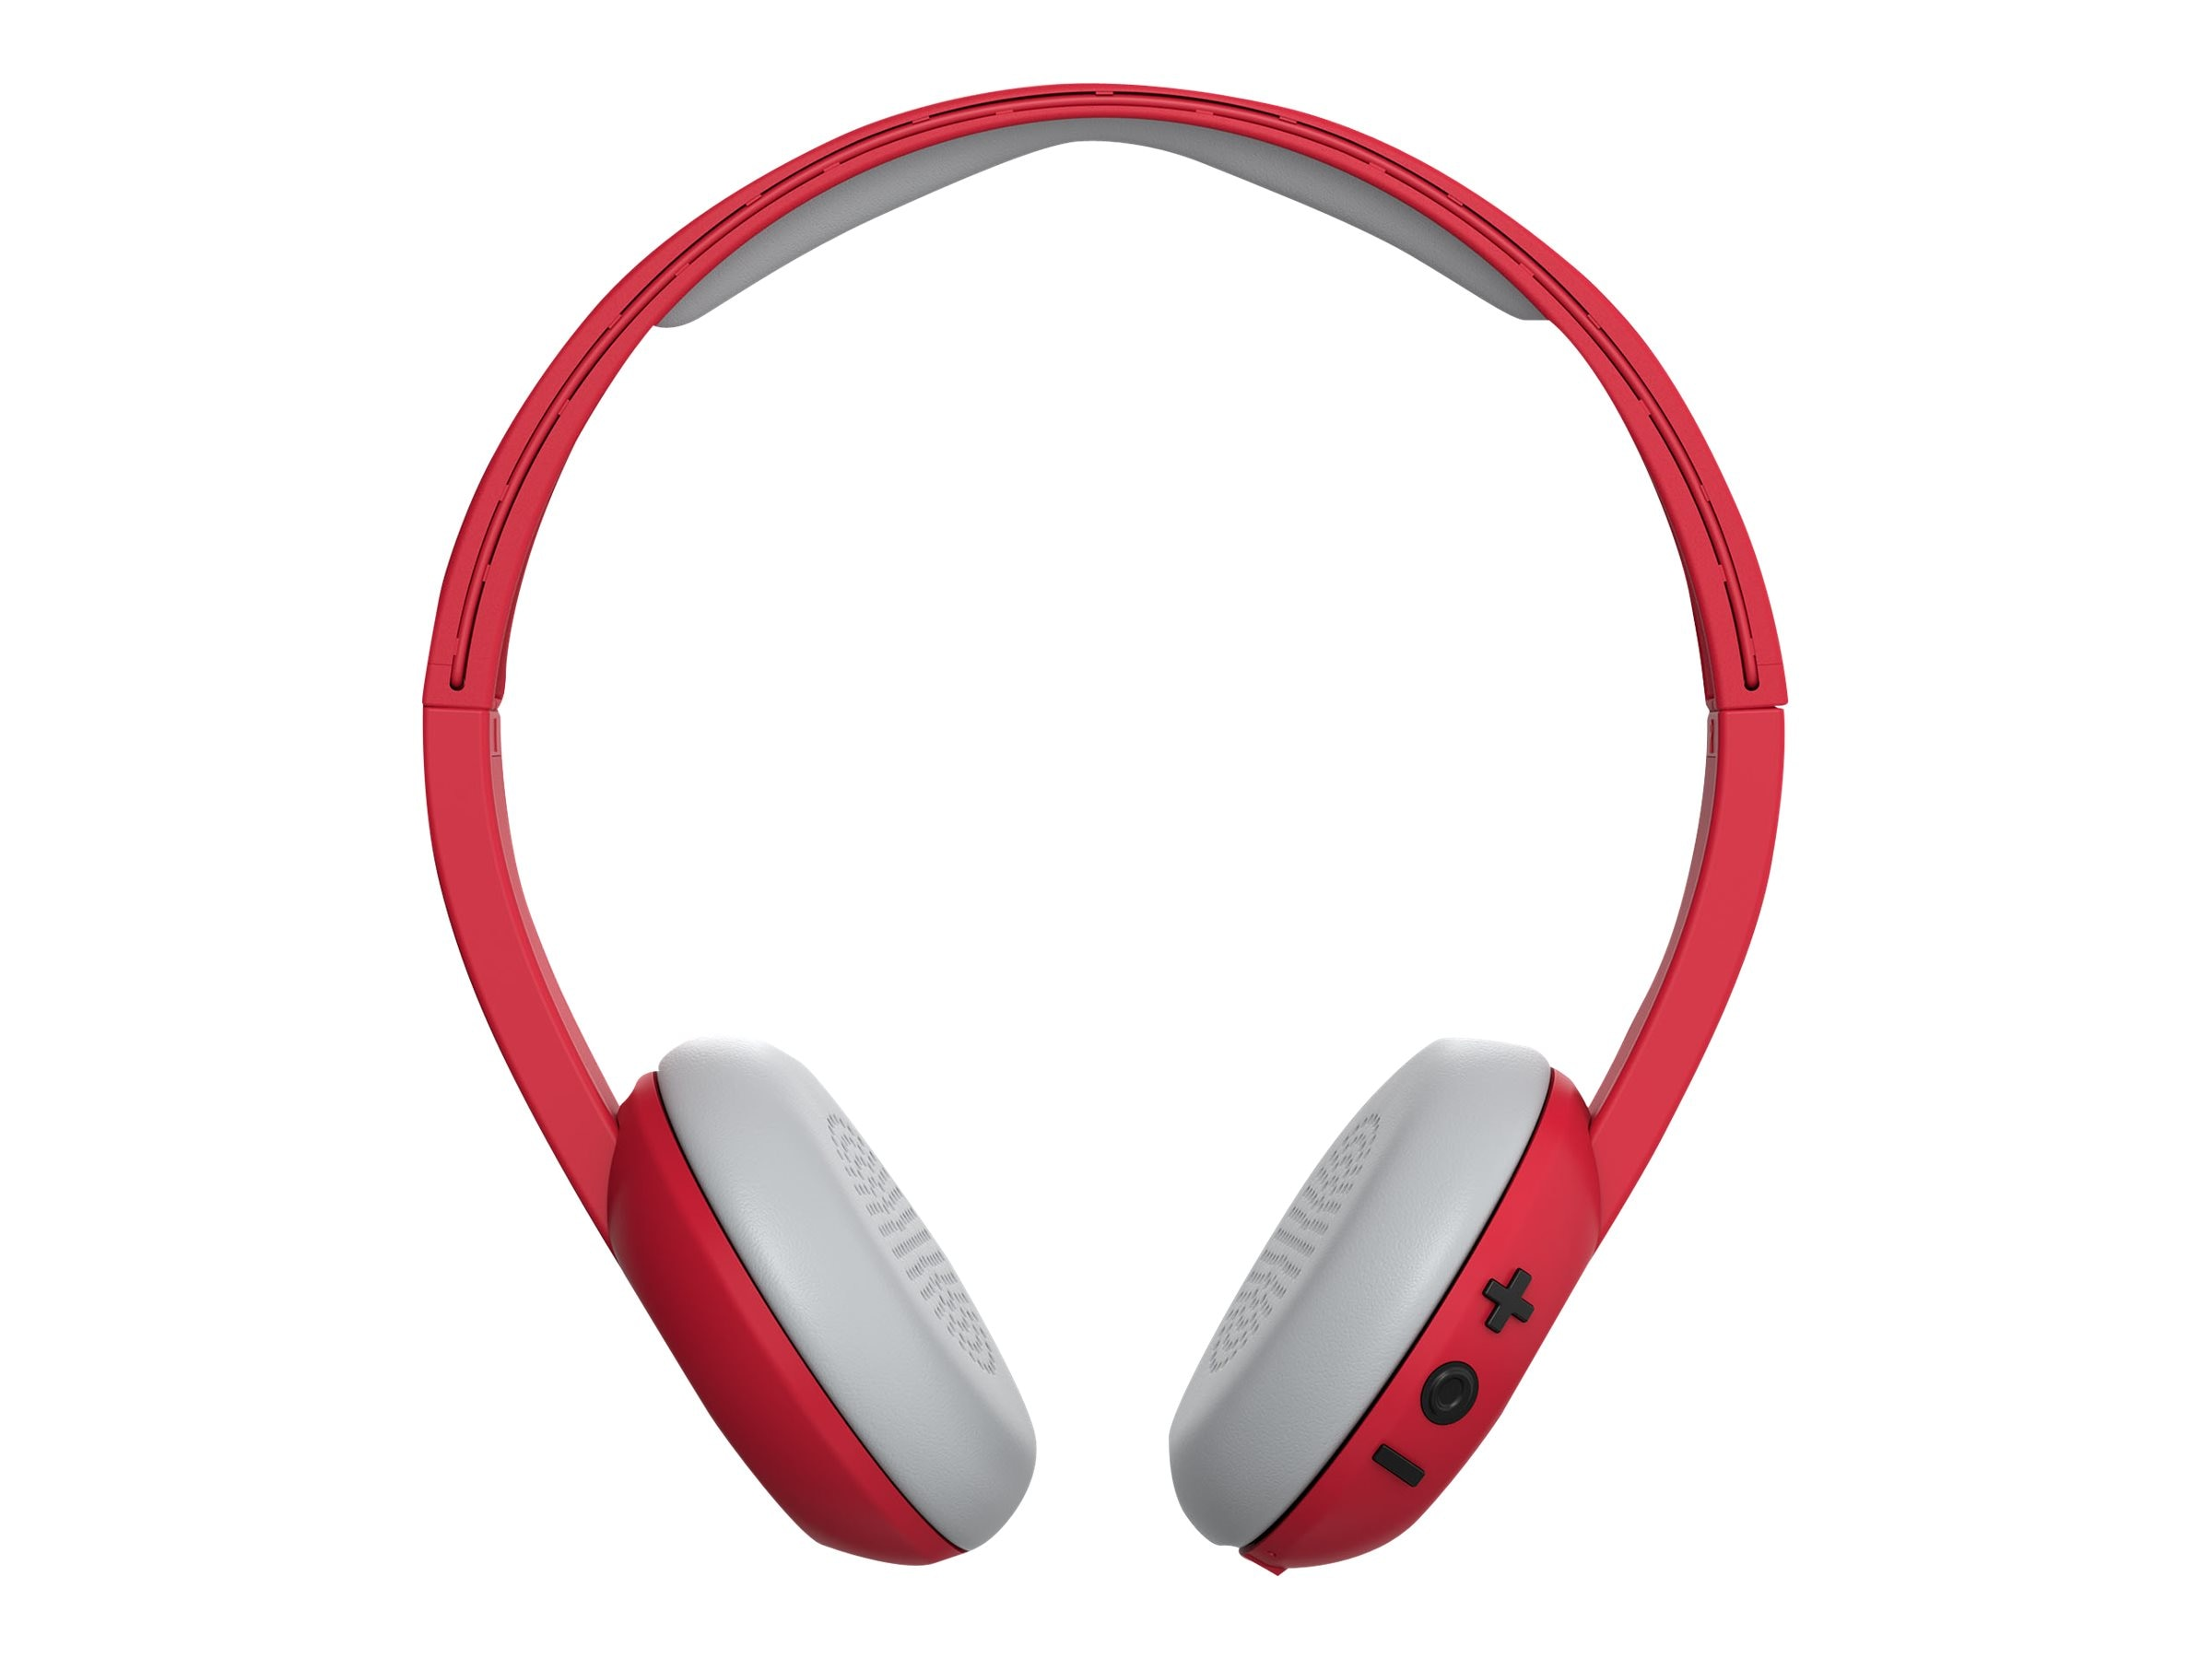 Skullcandy Uproar BT Headphones - Illfamed Red Black, S5URHW-462, 23836951, Headsets (w/ microphone)